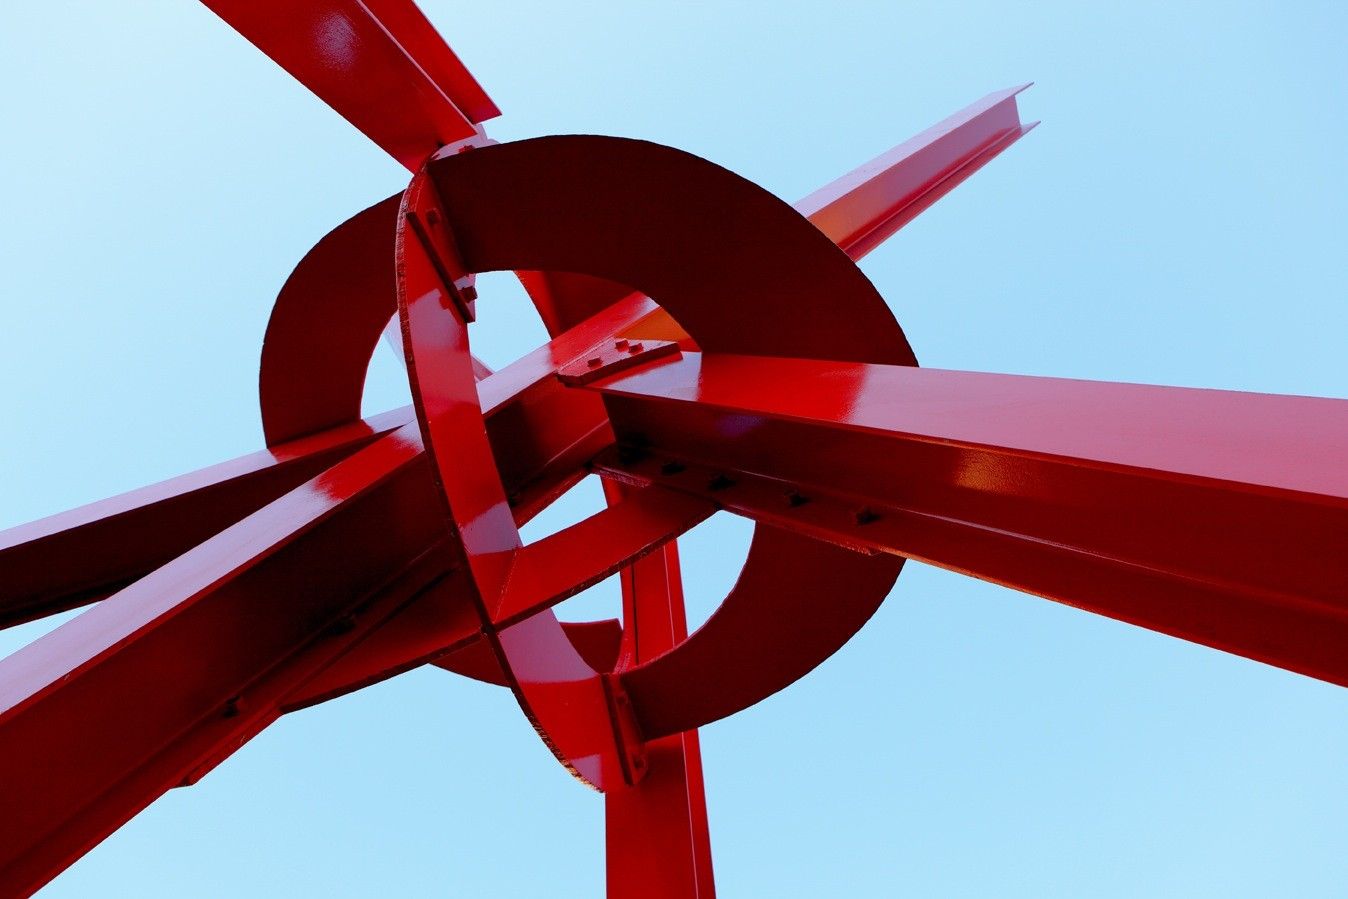 A large sculpture in front of a blue sky